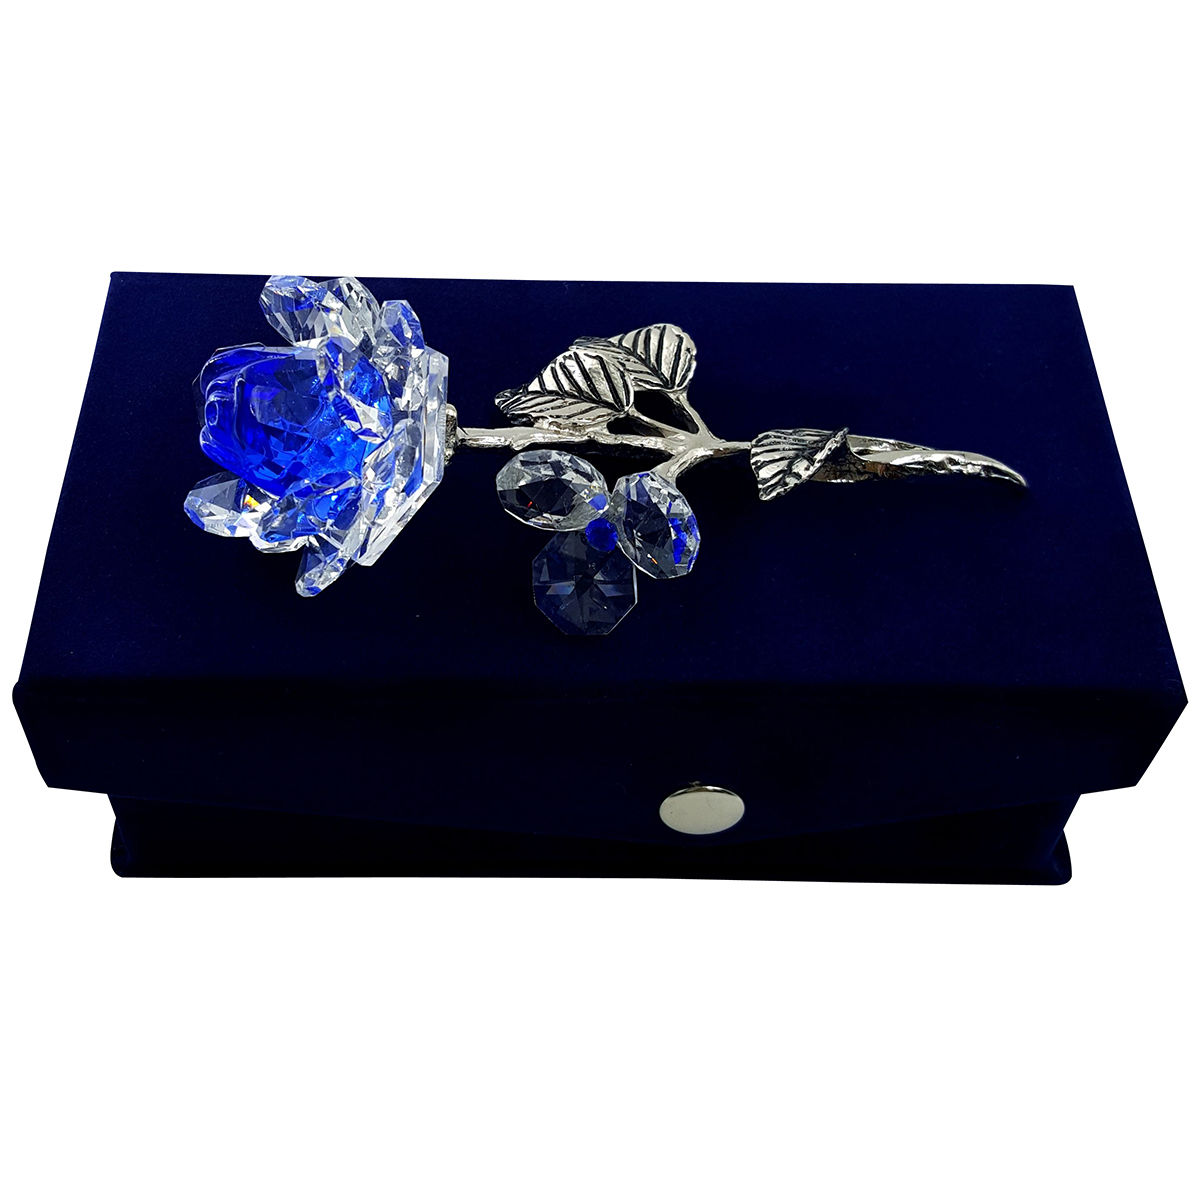 Crystal Milano Rose Blue - NOW IN HANDMADE VELVET BOX